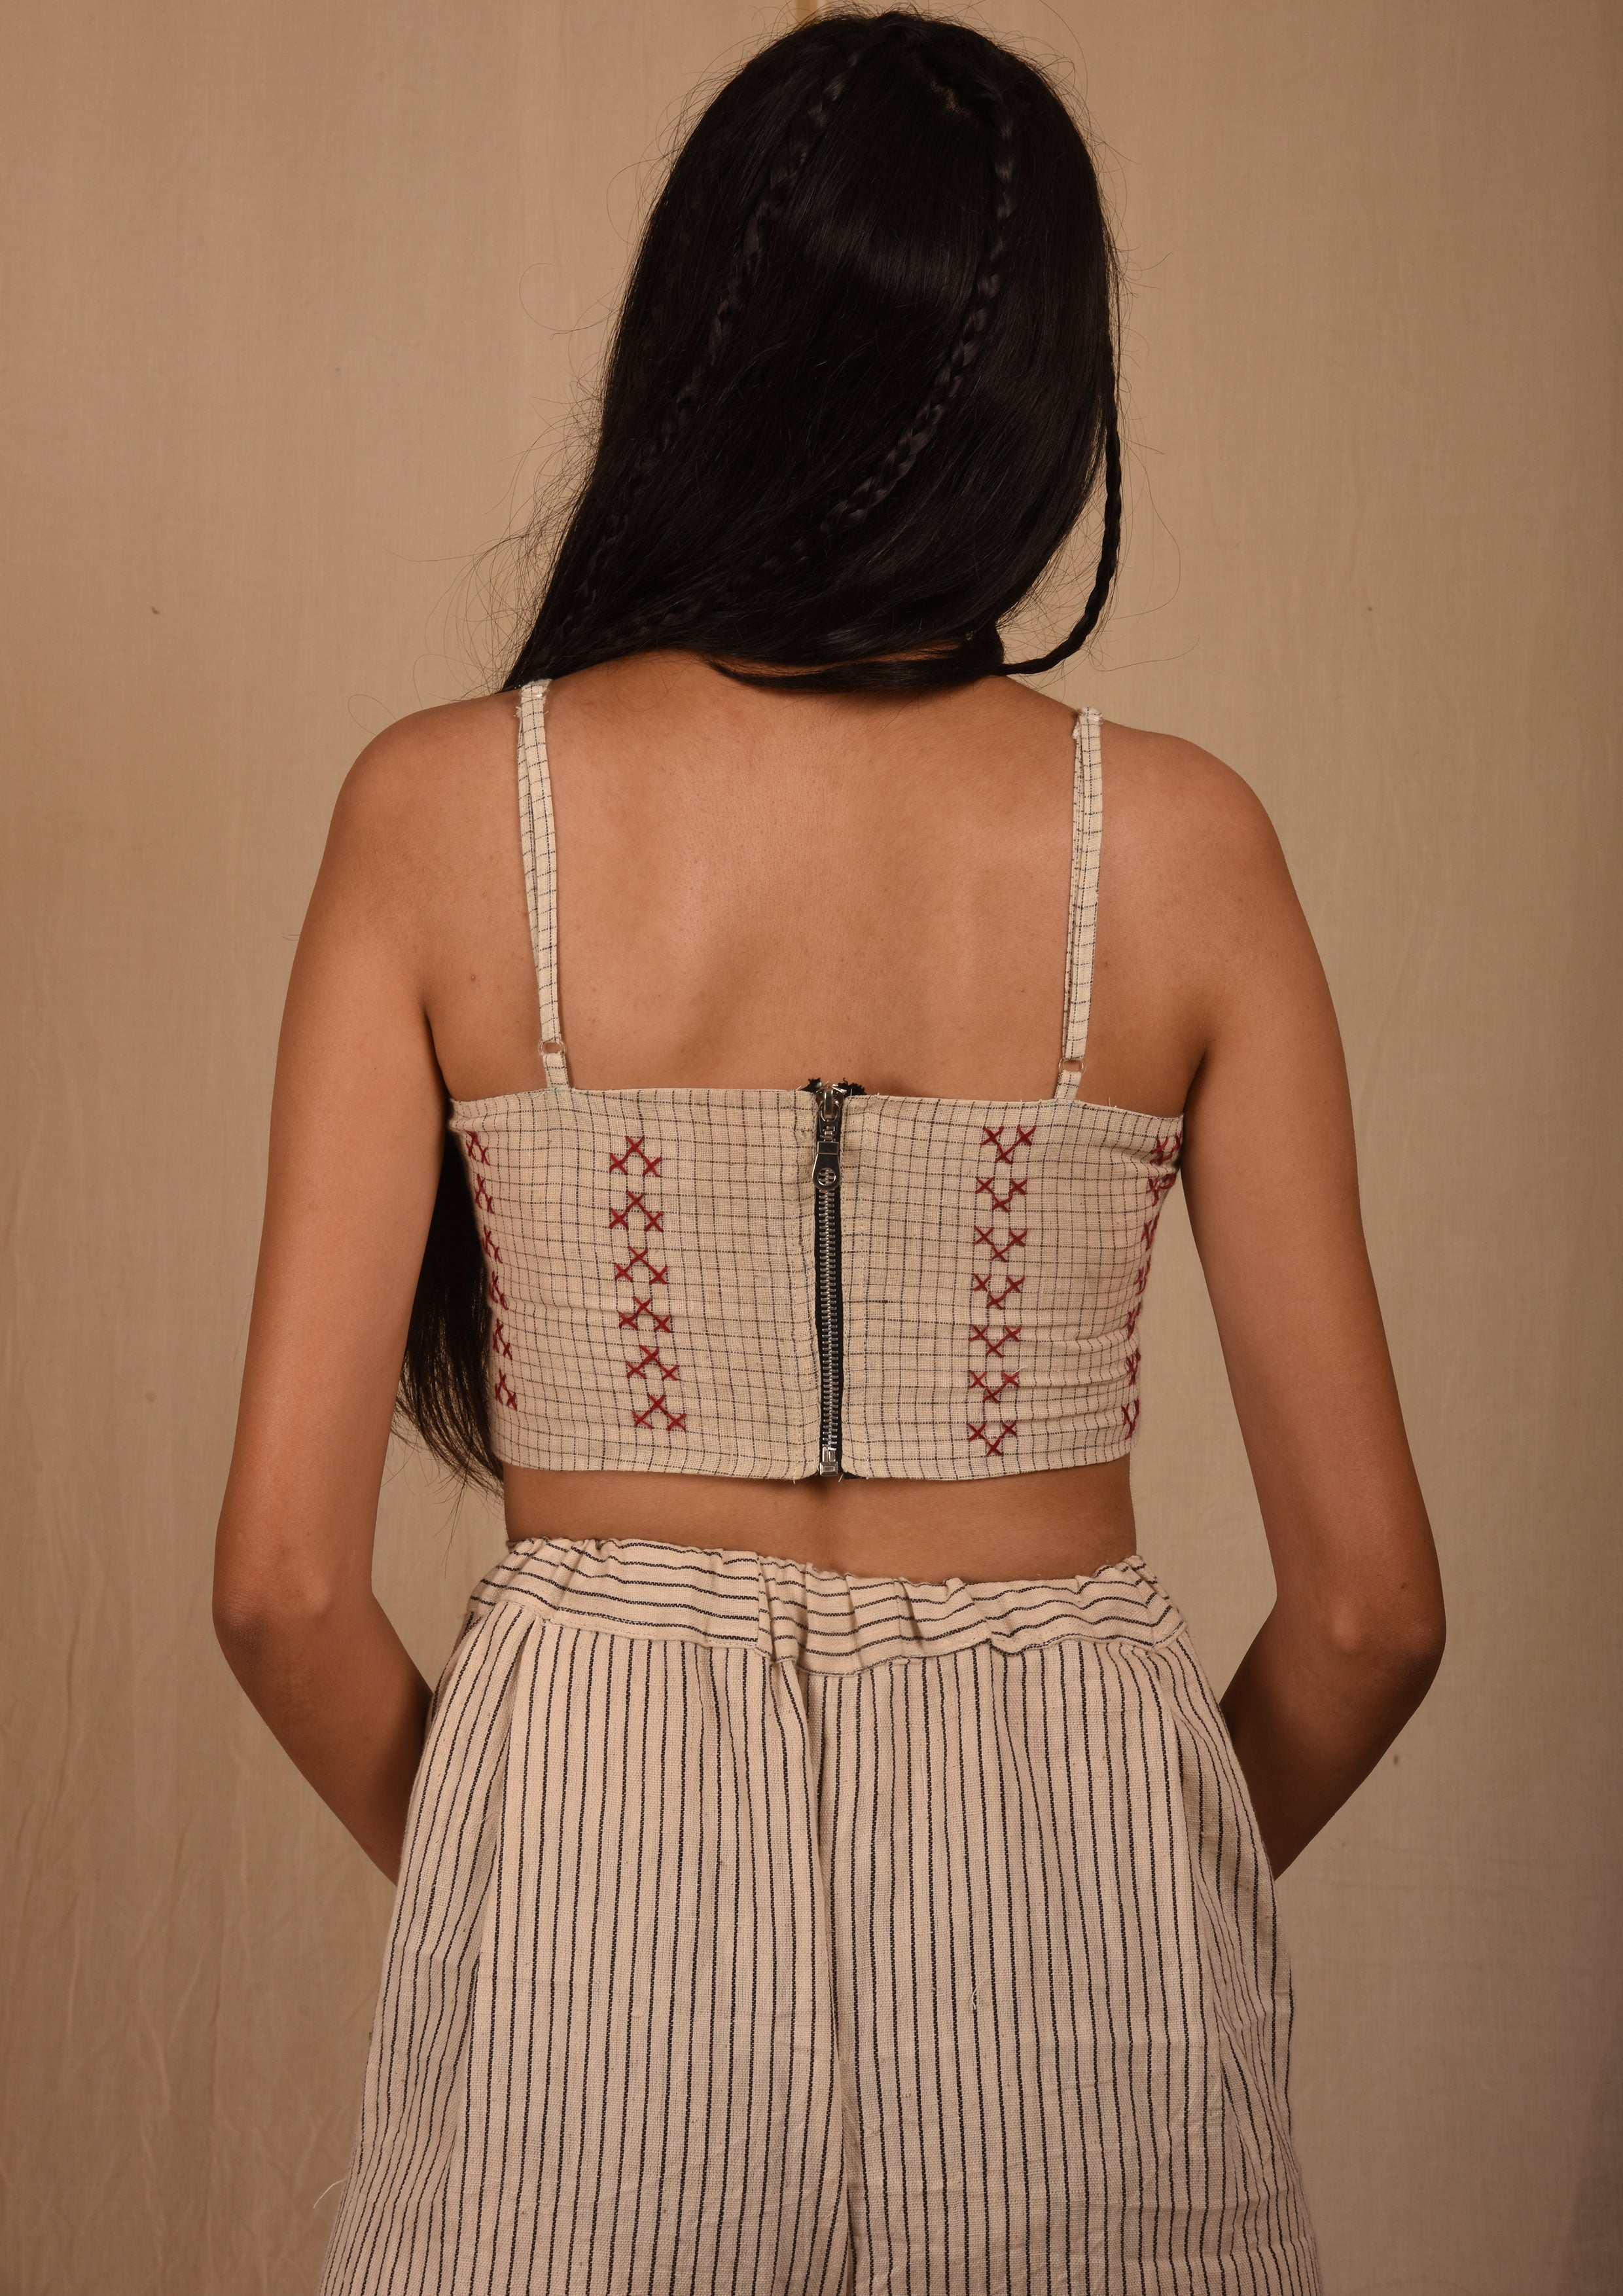 Checks Embroidered Bralette - YESHA SANT